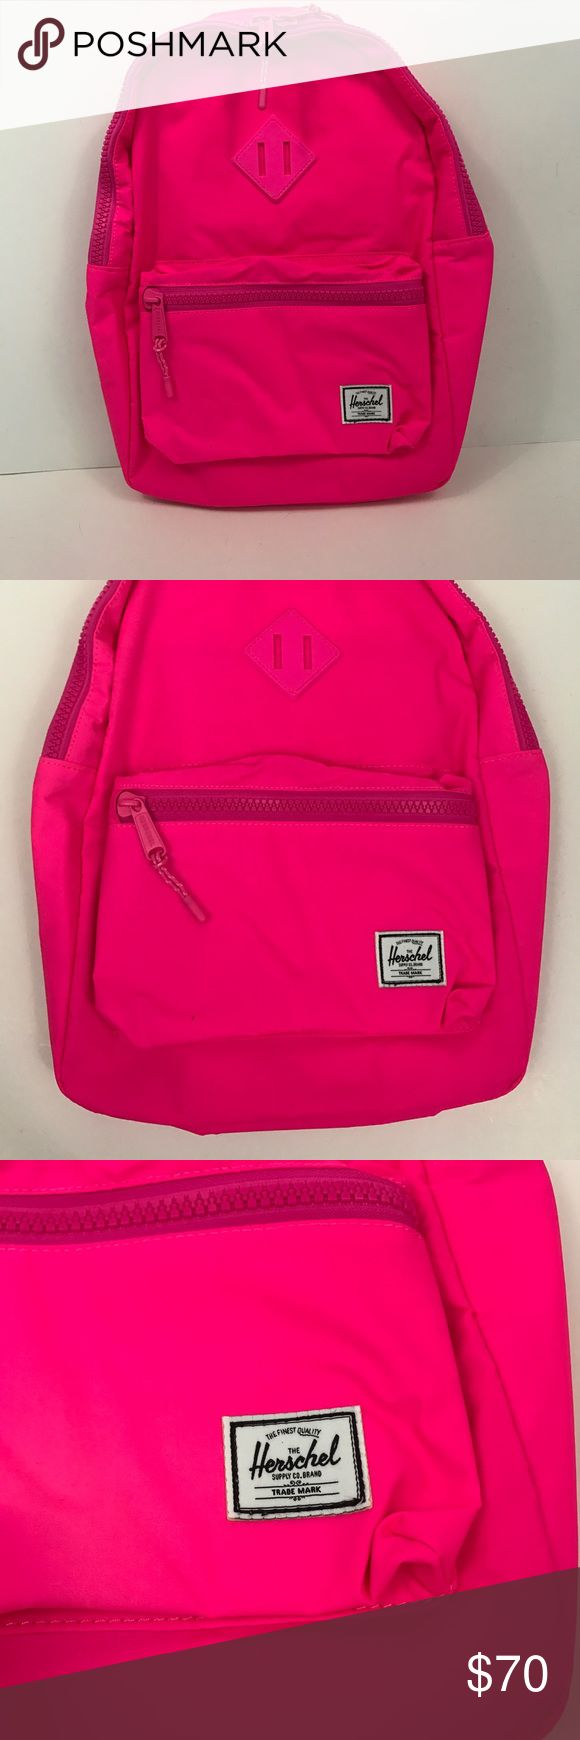 NWT Herschel Youth Size Heritage Backpack In Neon NWT Herschel Youth Size Heritage Backpack In Neon Pink MSRP $69.99 Herschel Supply Company Accessories Bags